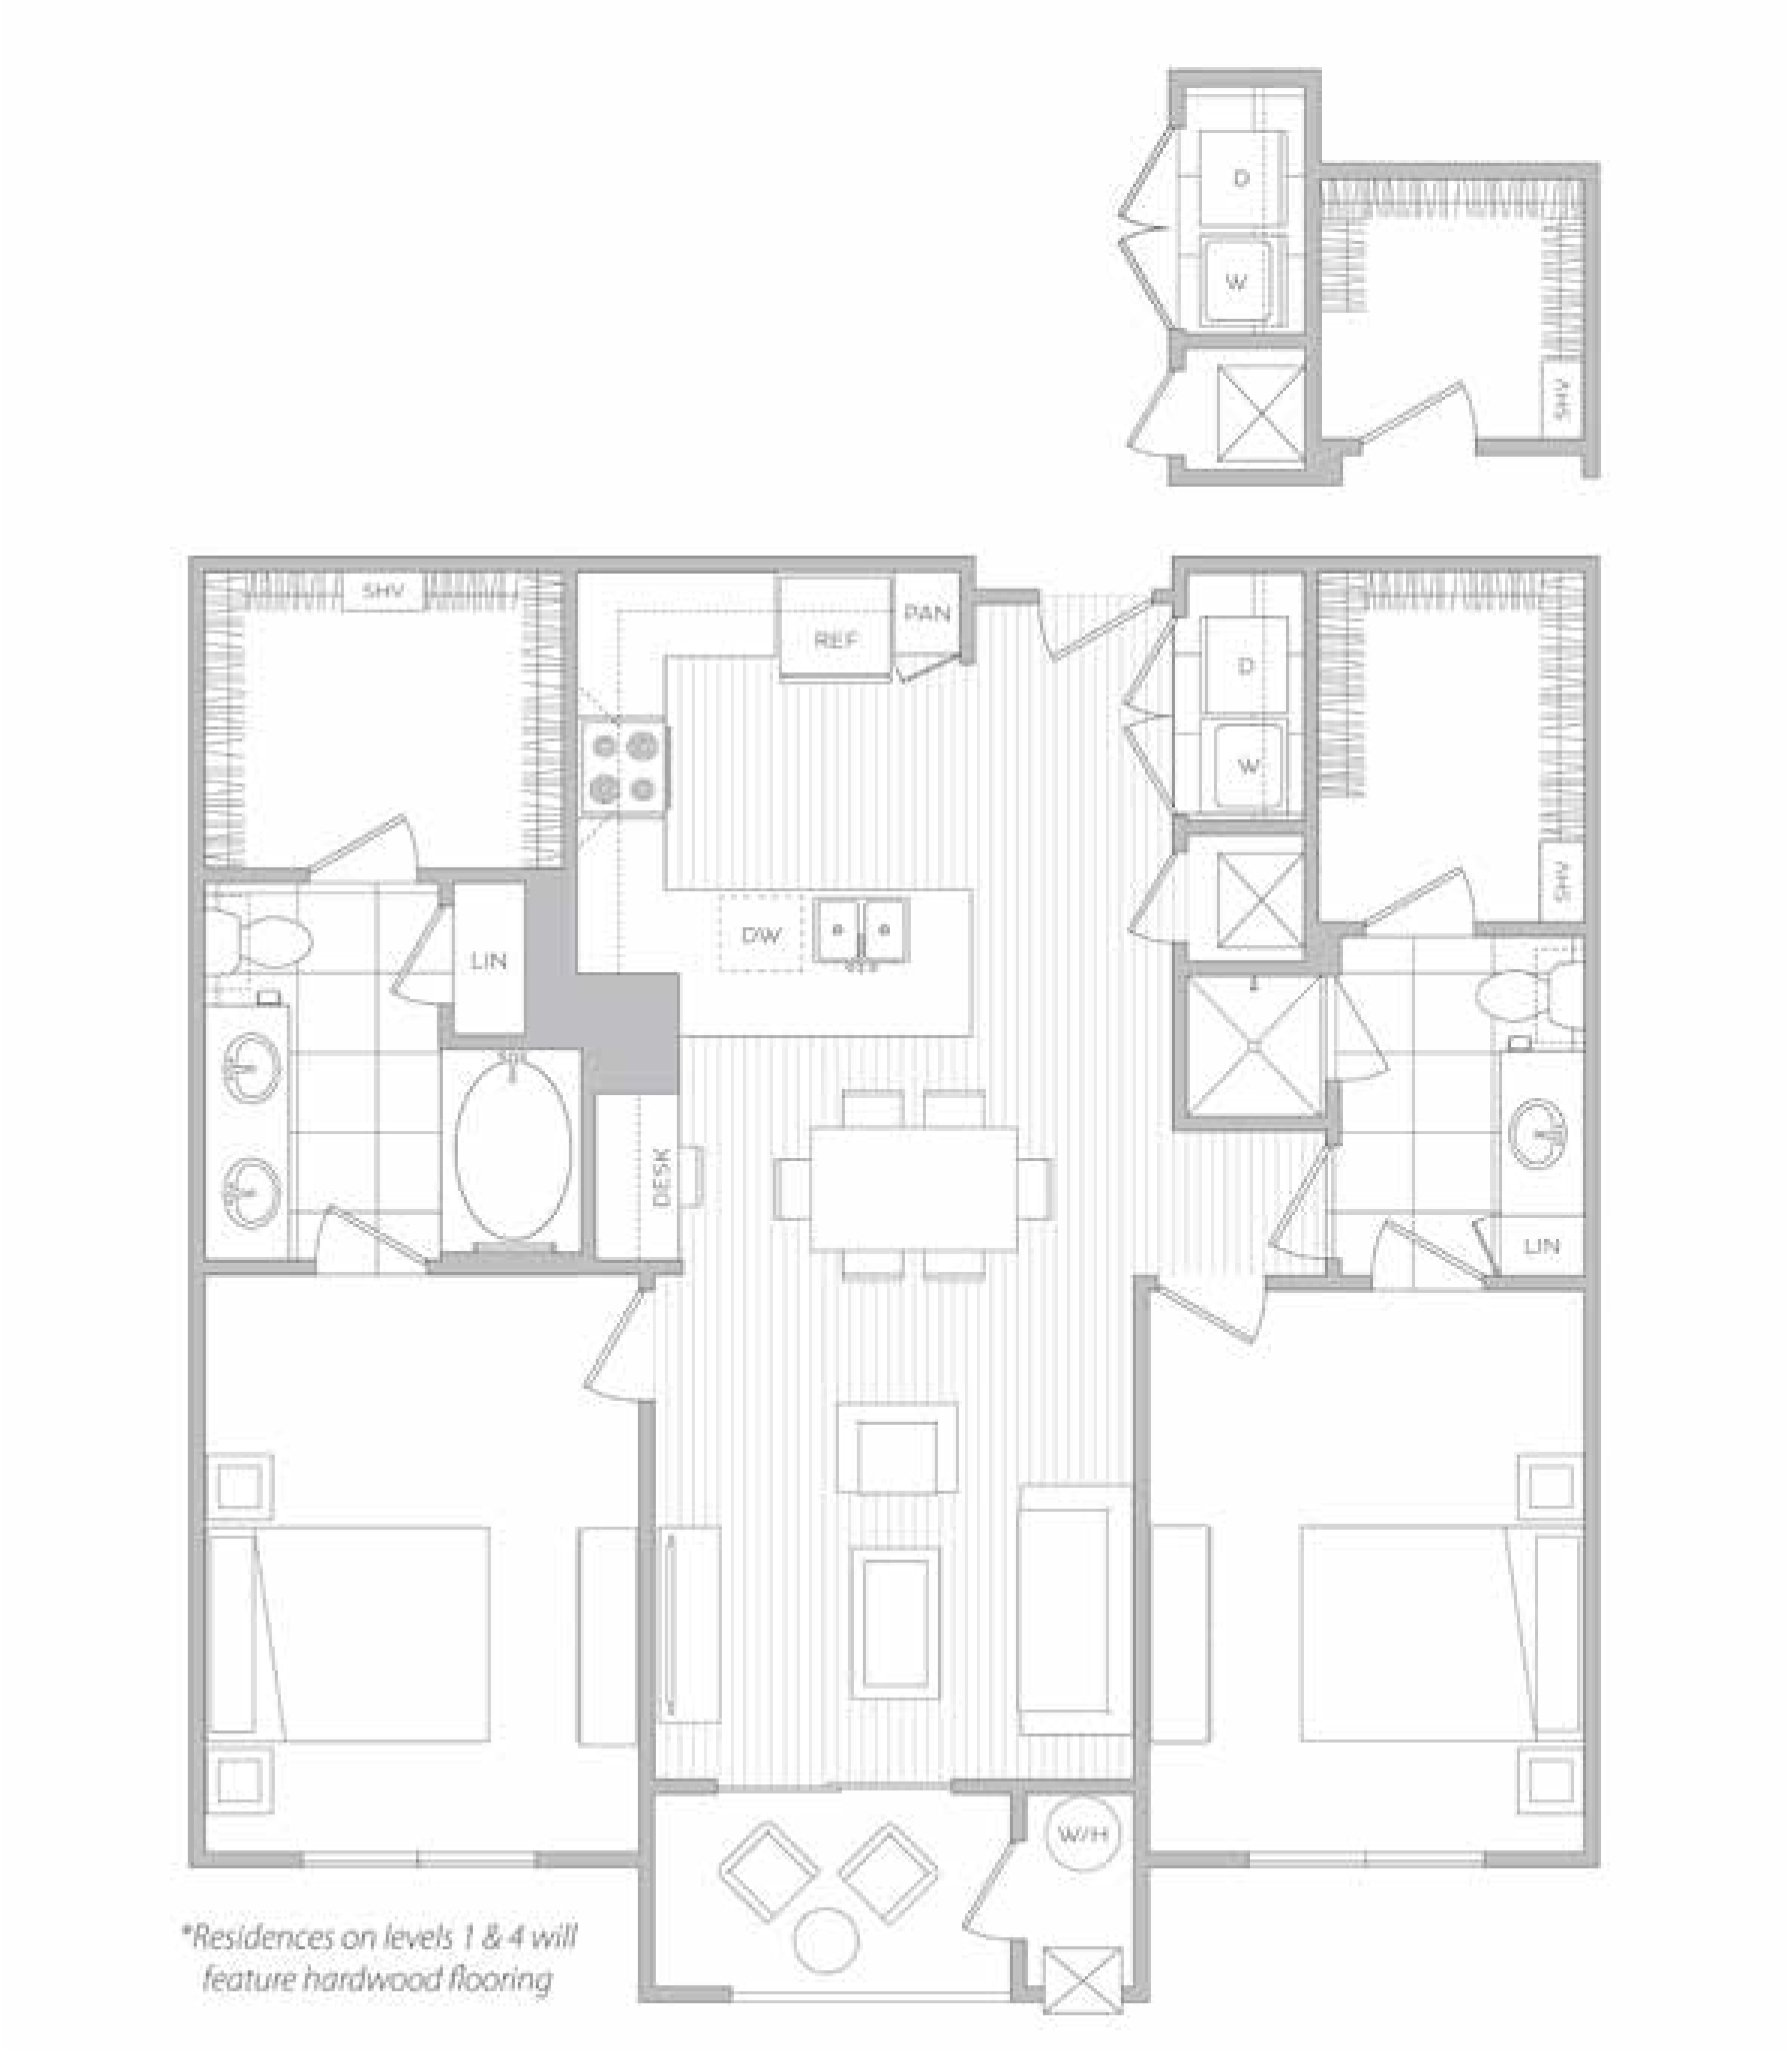 floor plan image of apartment 3306